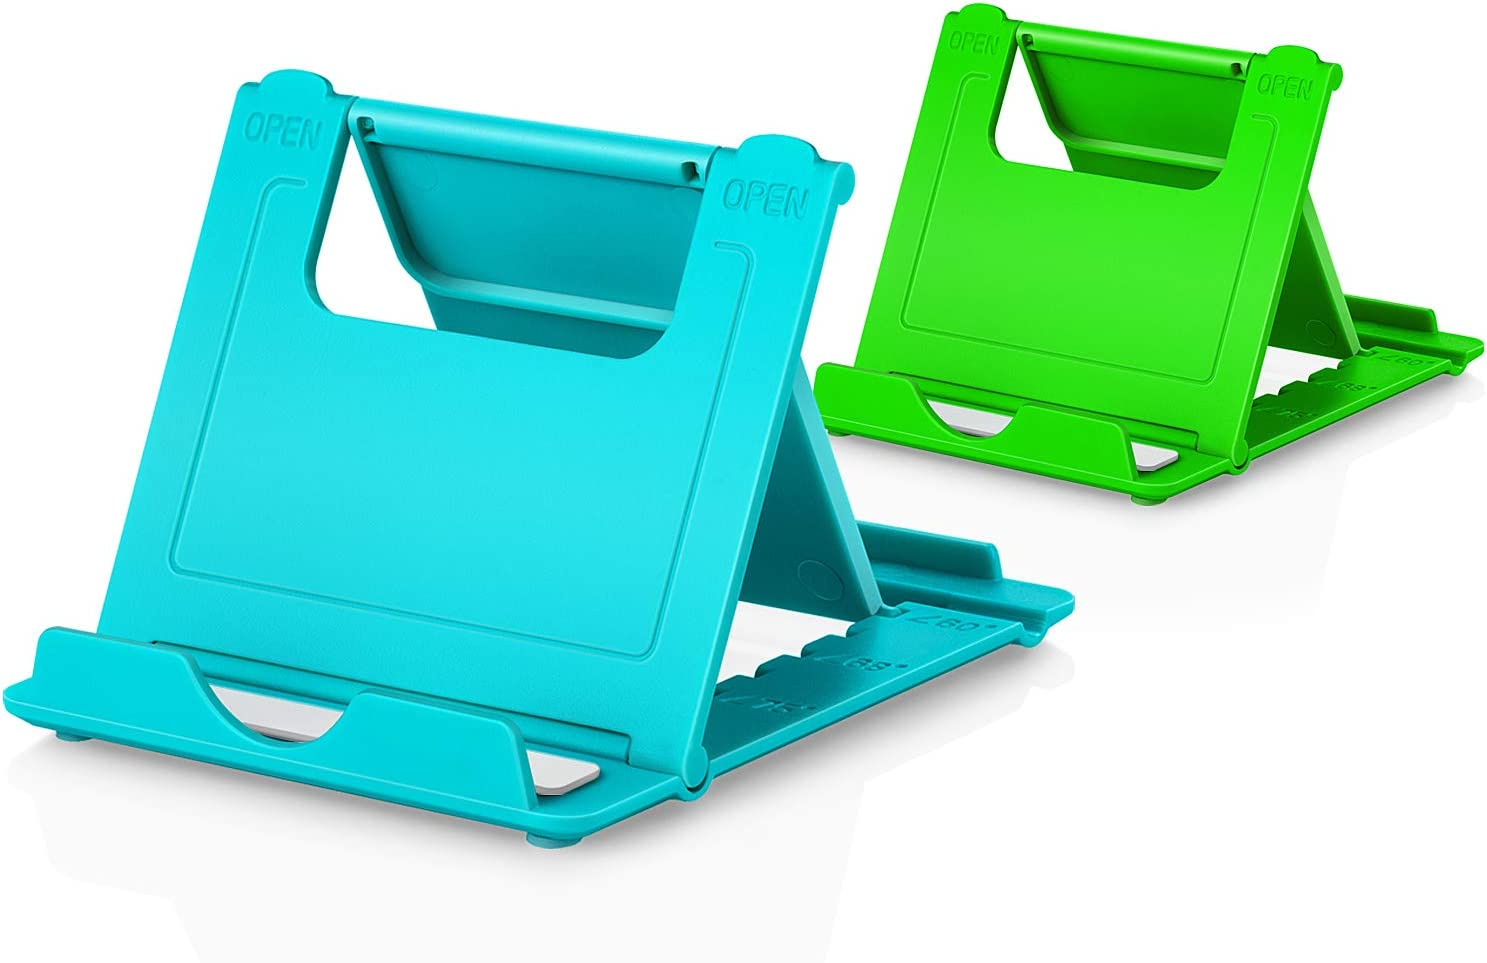 stands Foldable Multi-angle for desk lightweight Desktop Dock Cradle Compatible for iPhone Xs Max XR 8 Plus 6 7 6S X 5 Black Blue Green Pink 4-7.9 Phone Stand 4pack Cellphone Holder